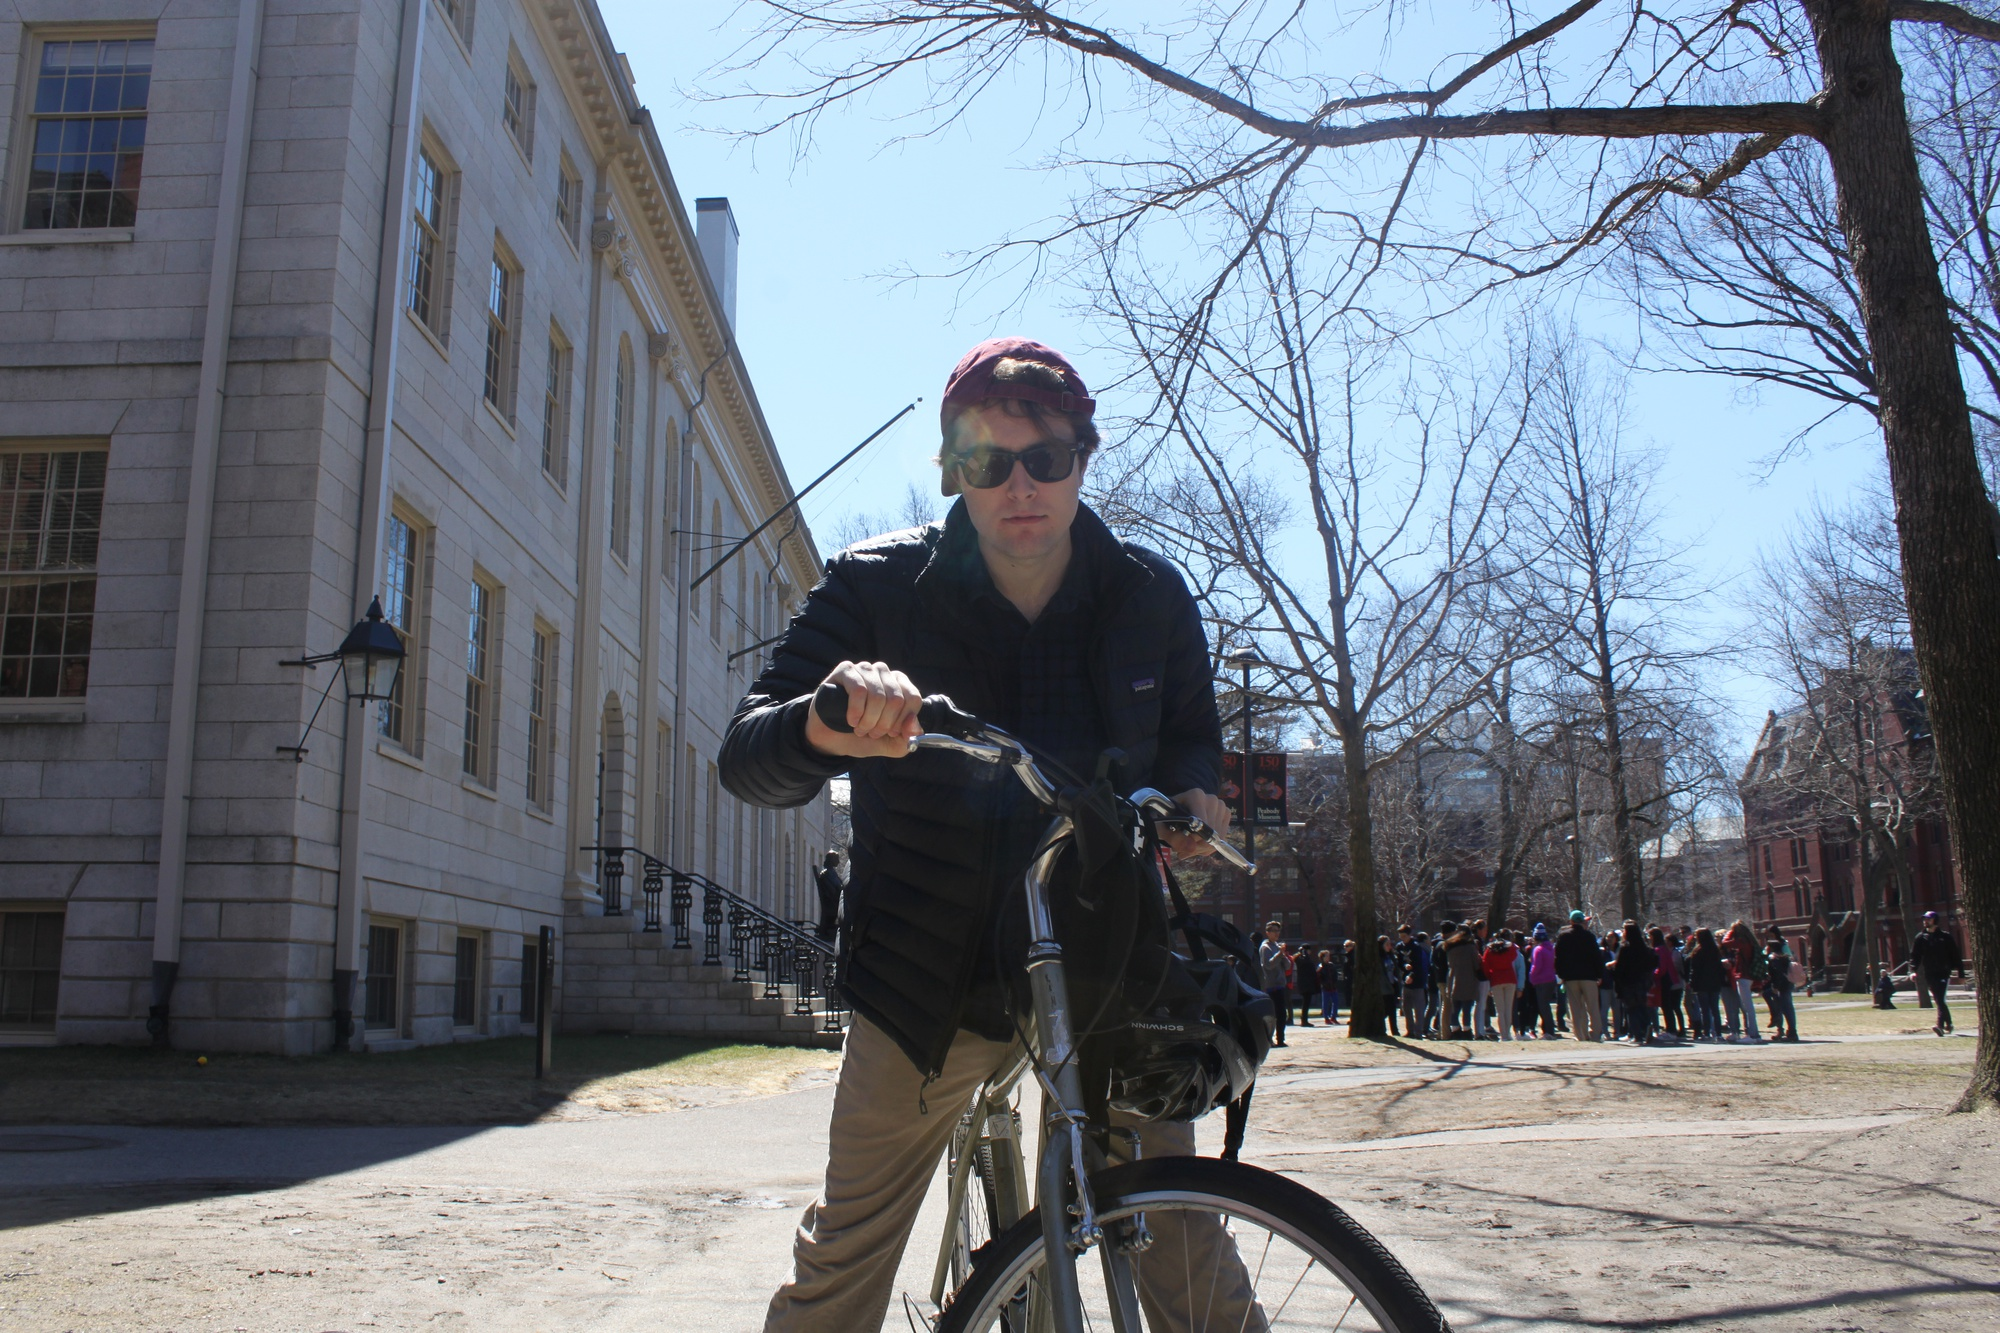 Like everyone who passes through the Yard, Drew C. Pendergrass notices the signs prohibiting biking. But he doesn't care.